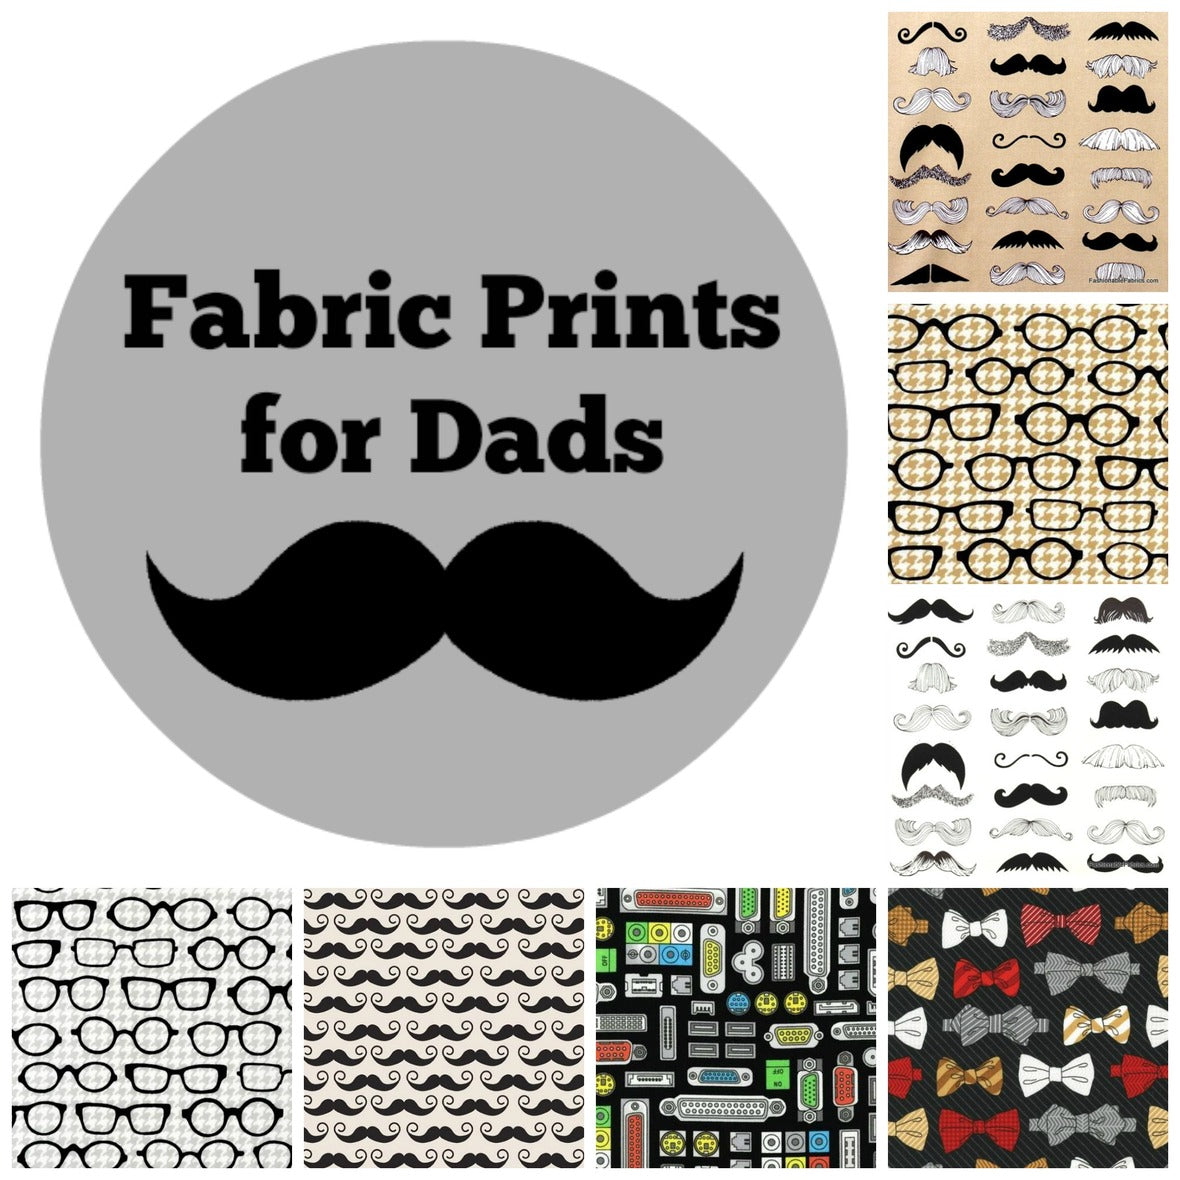 Fabric for Dads at Fashionable Fabrics